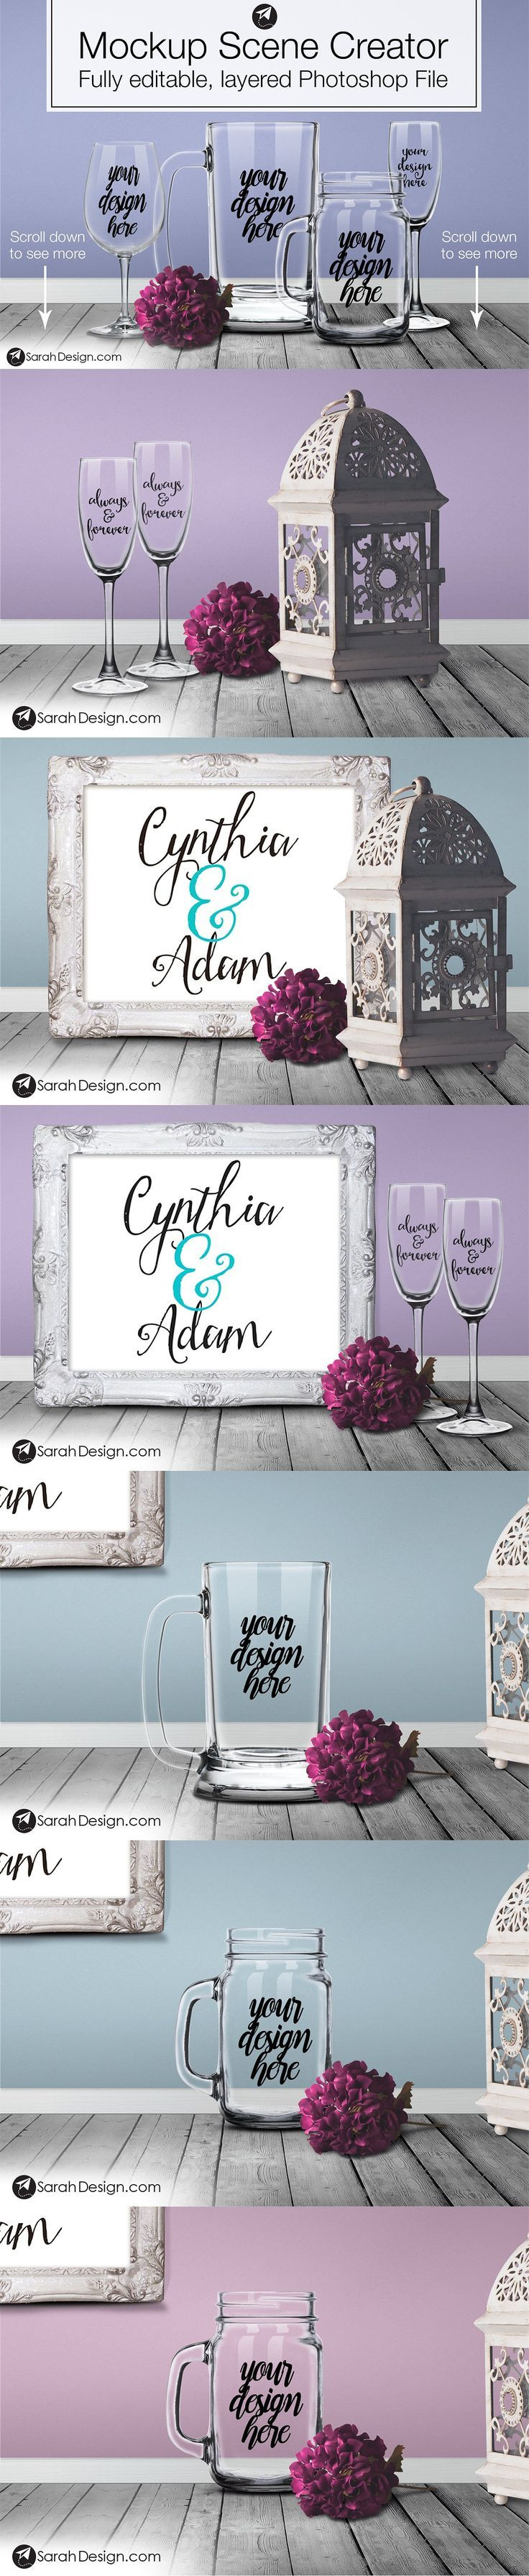 This styled mockup scene creator Photoshop template is perfect for printables shops, or Vinyl Design shops (Silhouette or Cricut), or anyone who adds logos and designs to drinking glasses, or frames. Use this many layered Photoshop file to create beautiful product listing images or mockups for customers. $39 https://crmrkt.com/wPjDGb?u=sarahdesign#ad